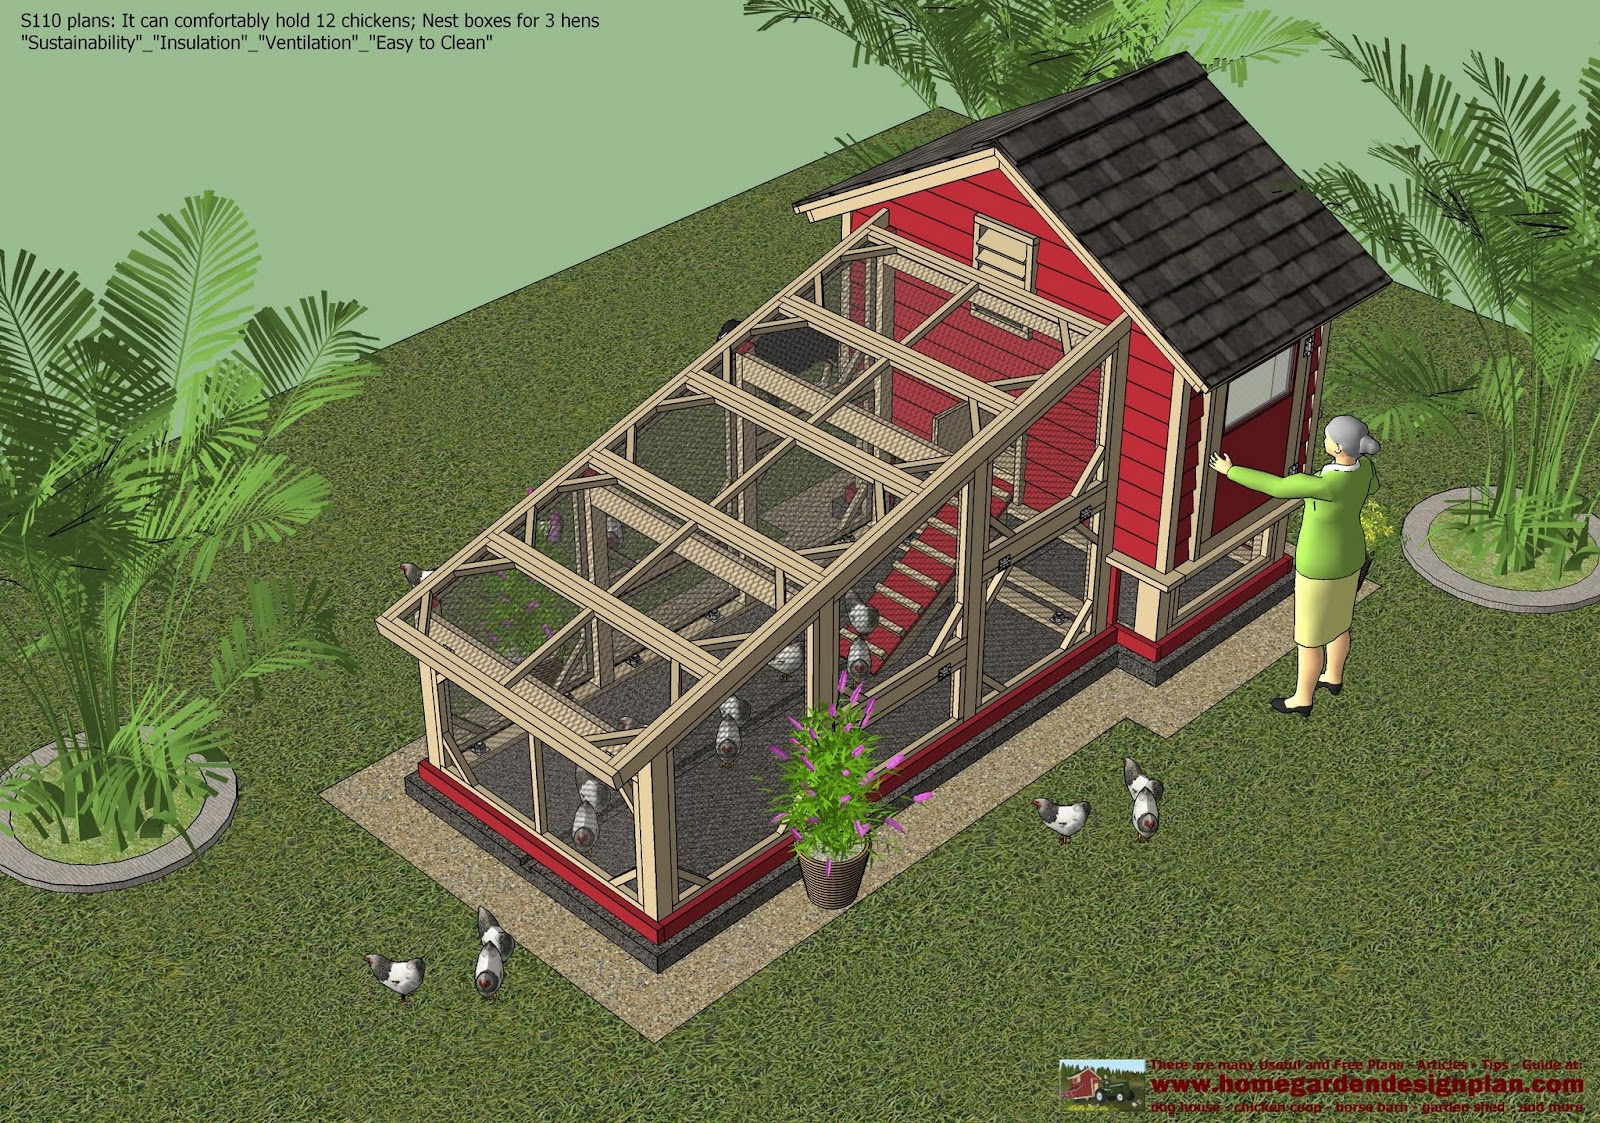 Sntila s110 chicken coop plans construction chicken coop for Chicken coop size for 6 chickens